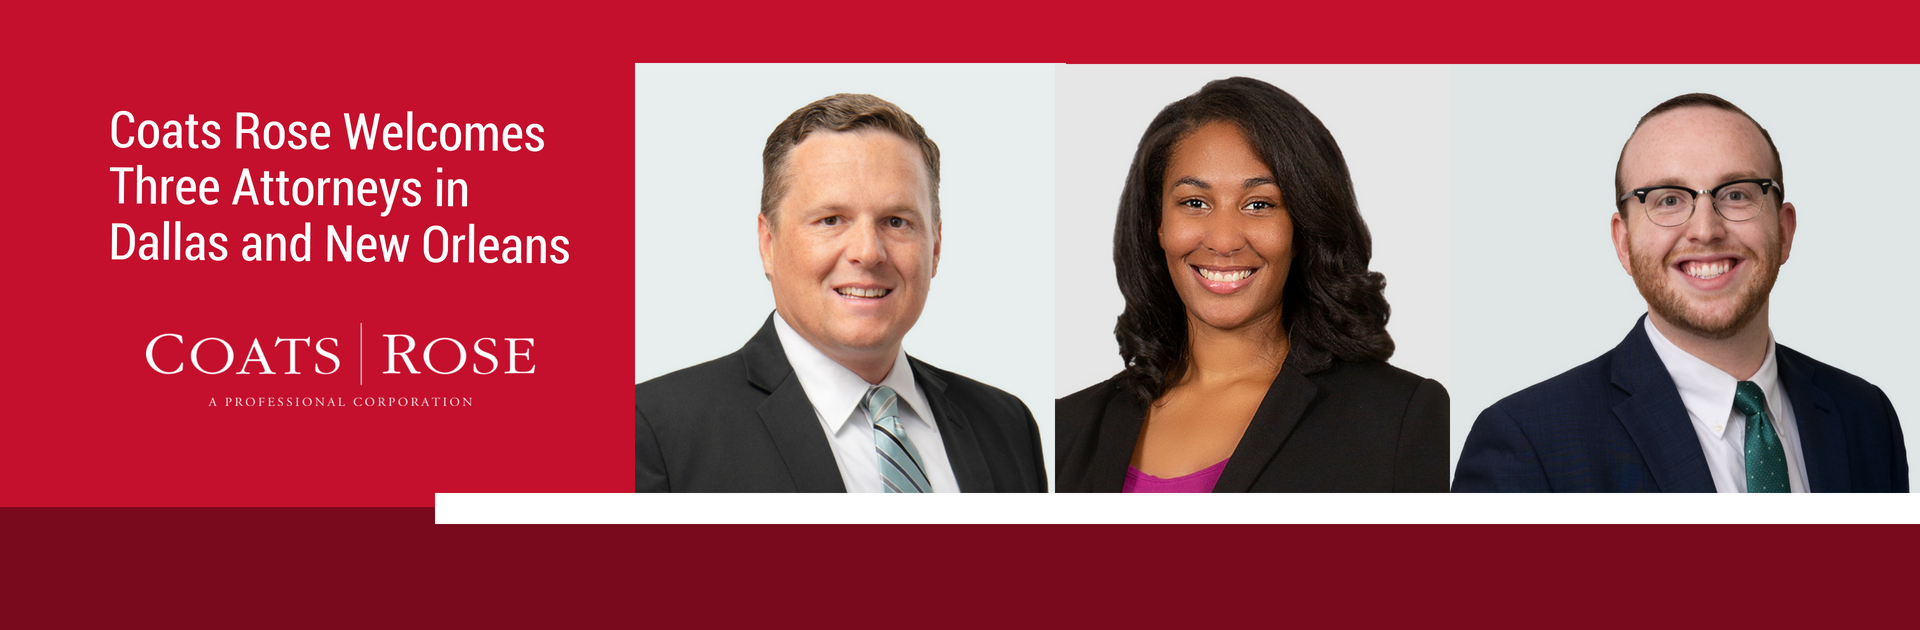 Coats Rose Adds Three Attorneys in Dallas and New Orleans Offices